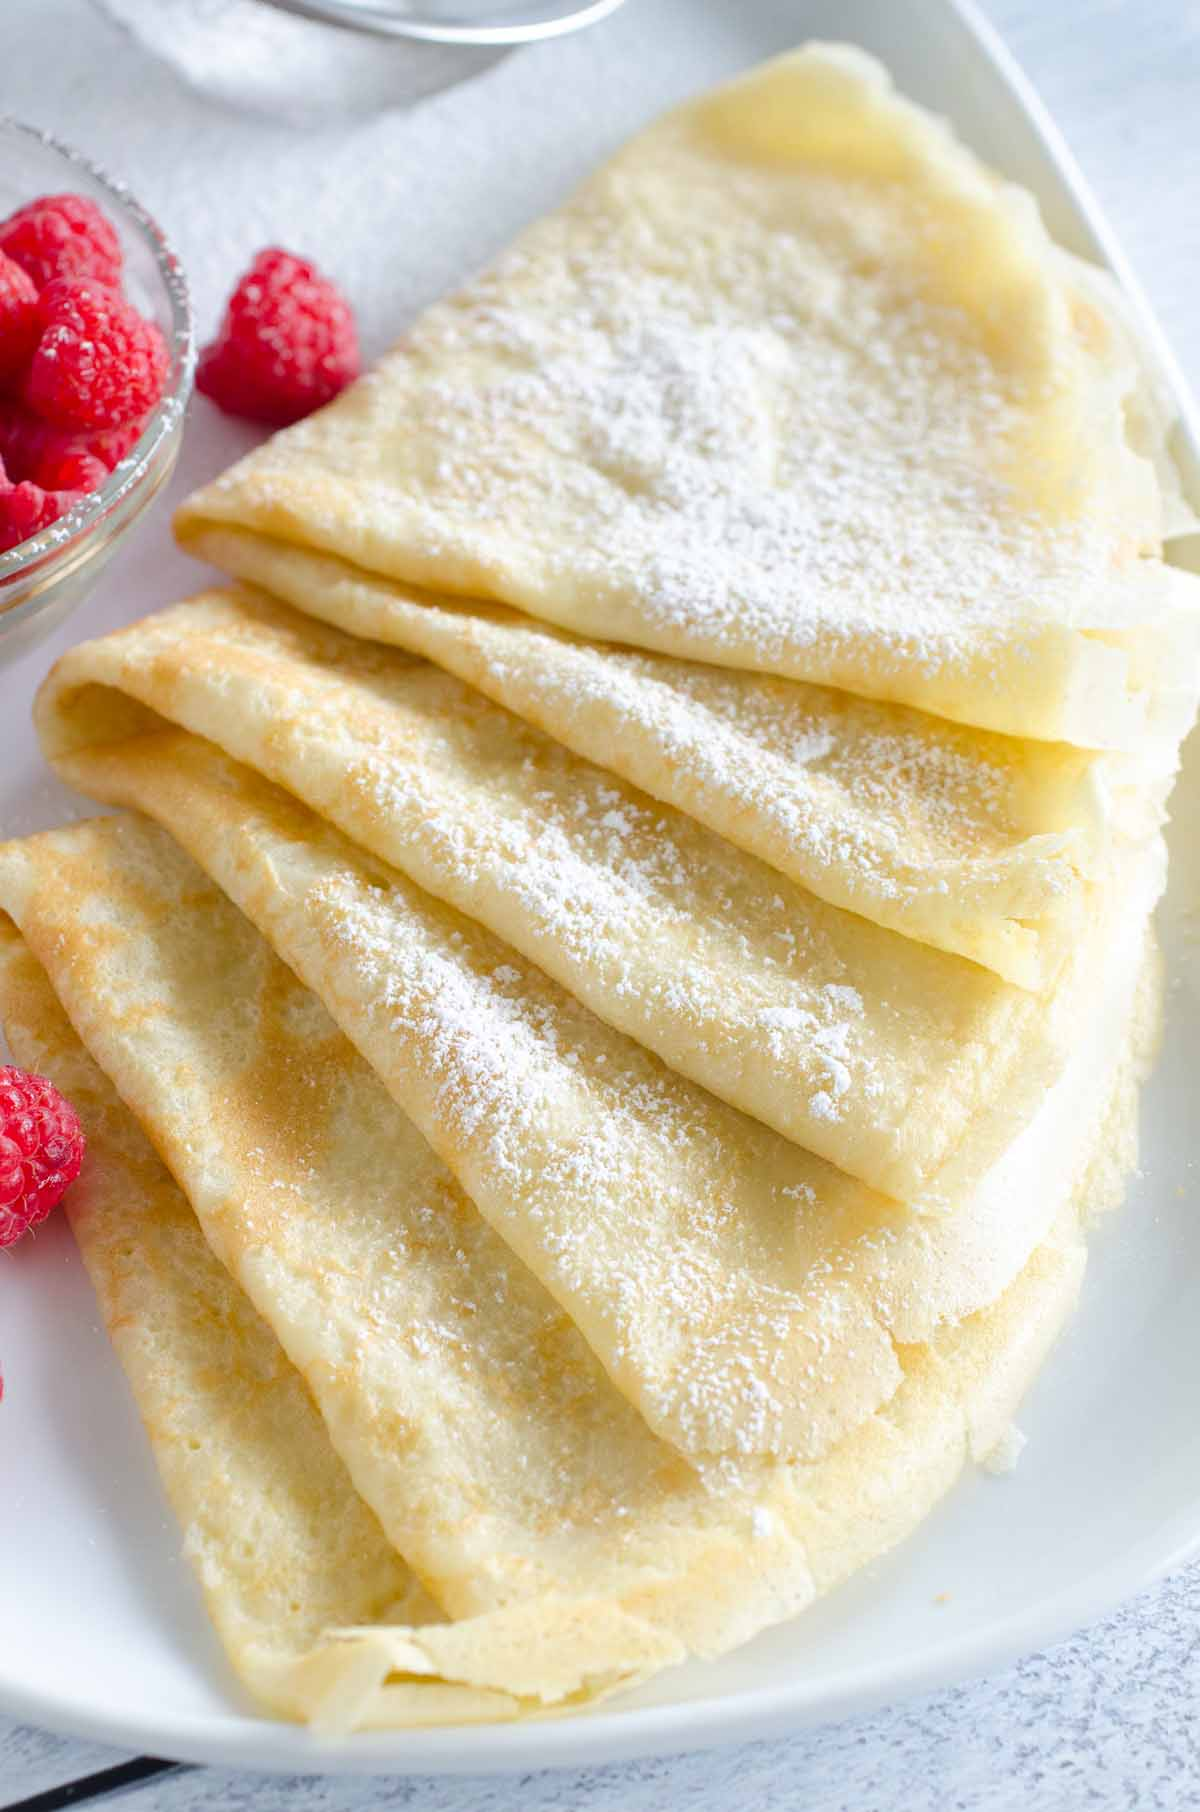 crepes folded on plate with raspberries and dusted with powdered sugar